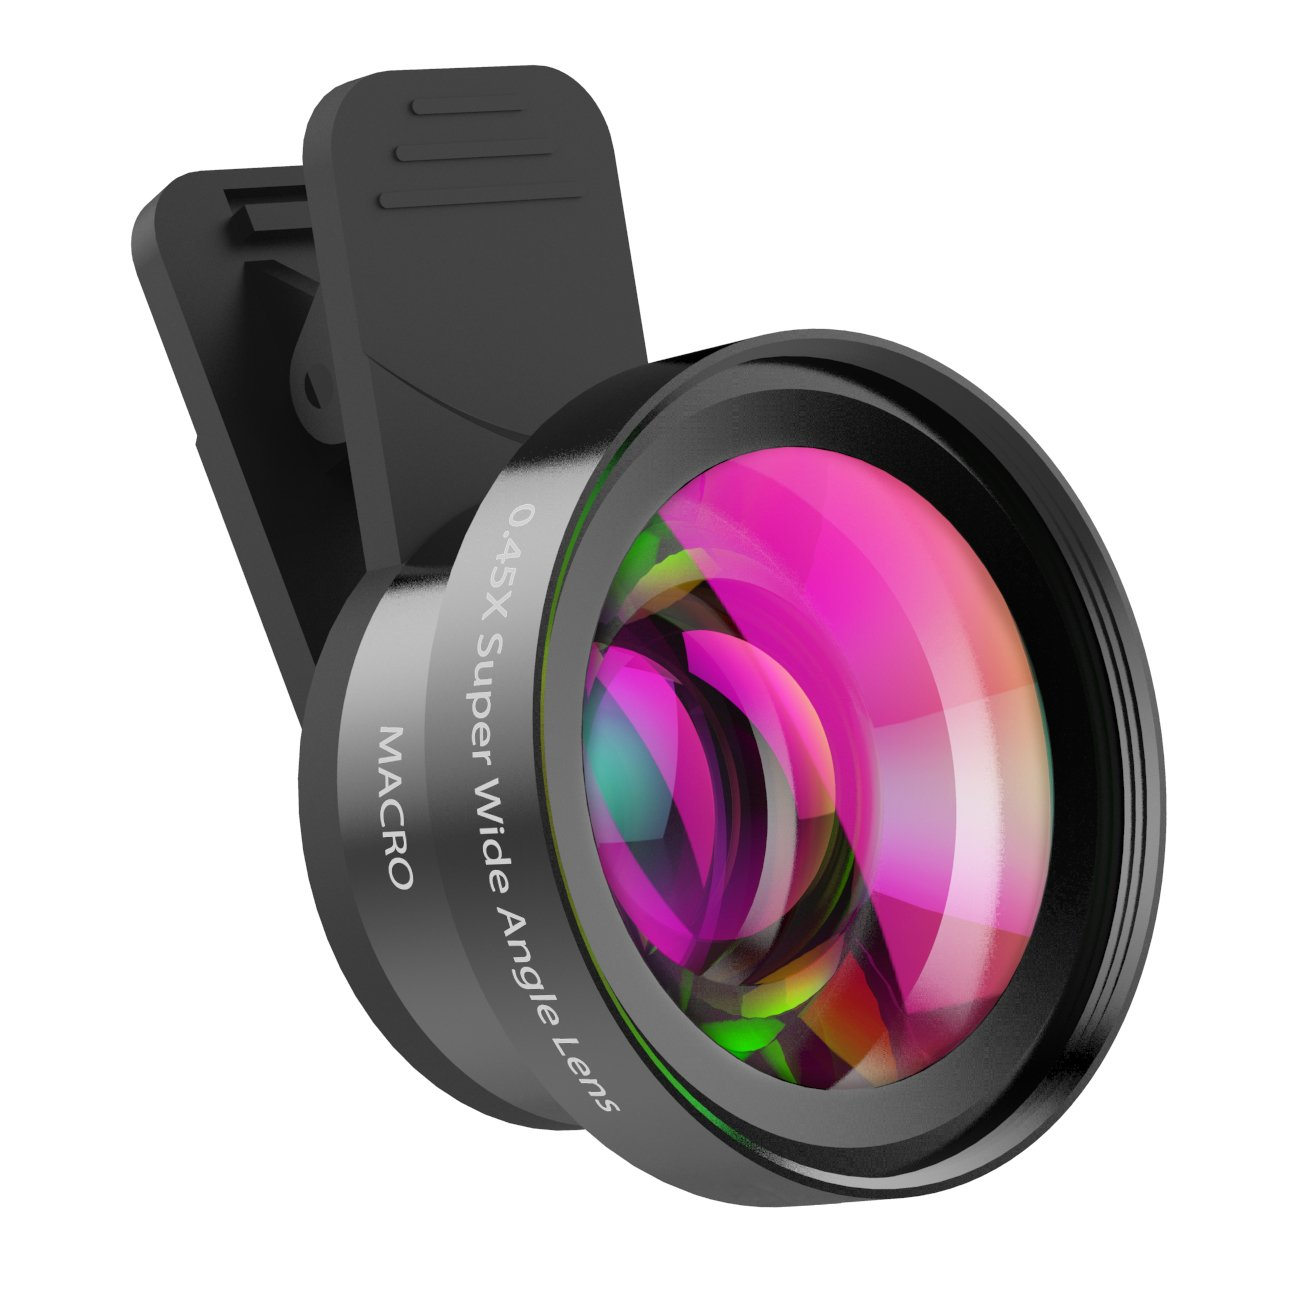 ZPTONE Phone Camera Lens, Cell Phone Camera Lenses 2 in 1 Clip-on iPhone Camera Lens Kit 0.45X Super Wide Angle Lens & 15X Macro Lens for iPhone, Android, Samsung Mobile Phones and Tablets